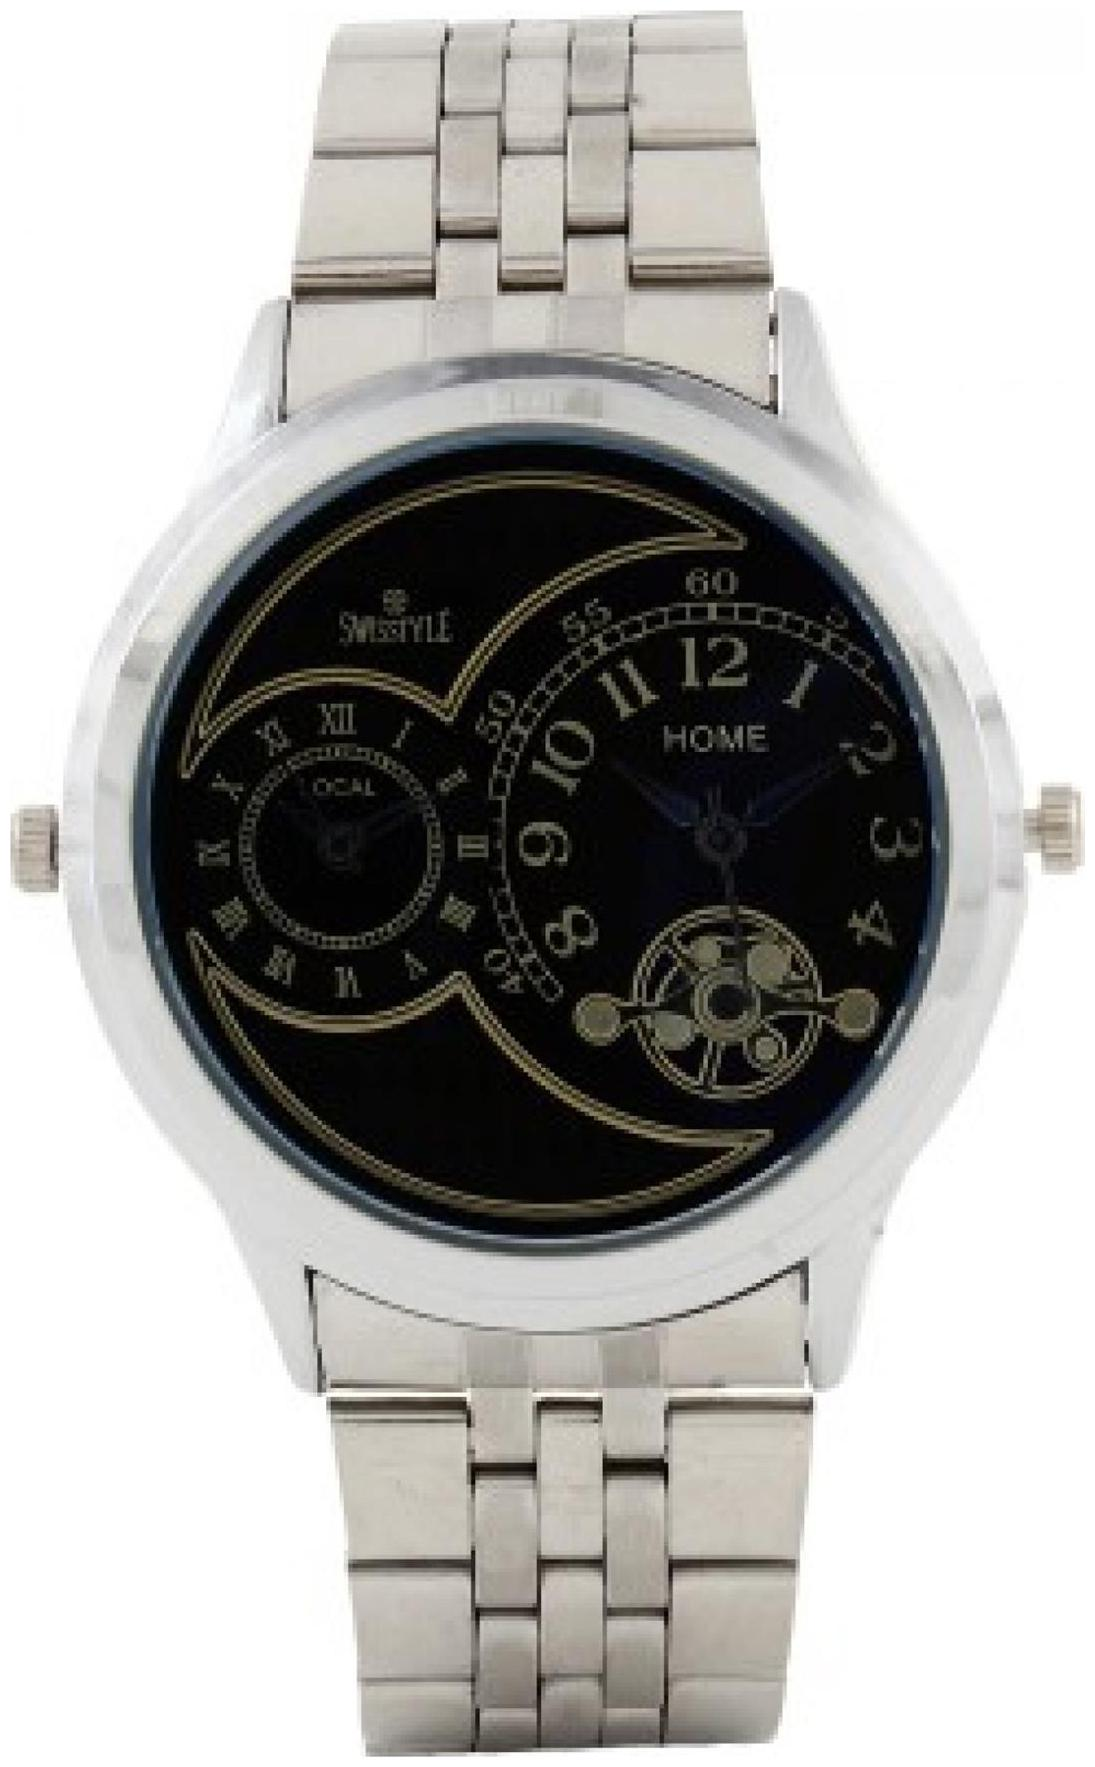 Swisstyle SS GR161 BLK CH Dual time analog watch for Men